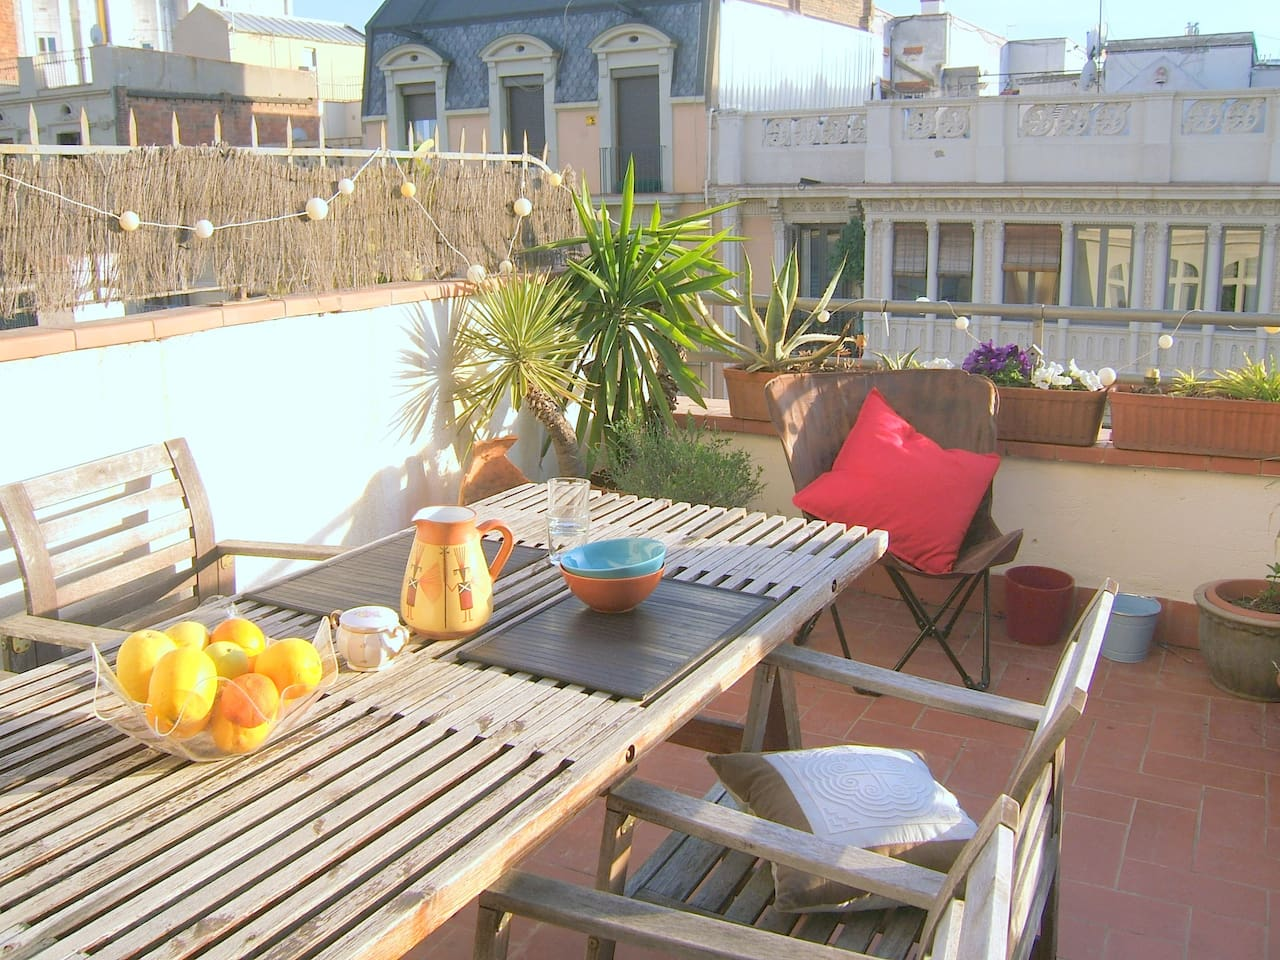 Access to sunny terrace for sun bathing and breakfast/dinner outside